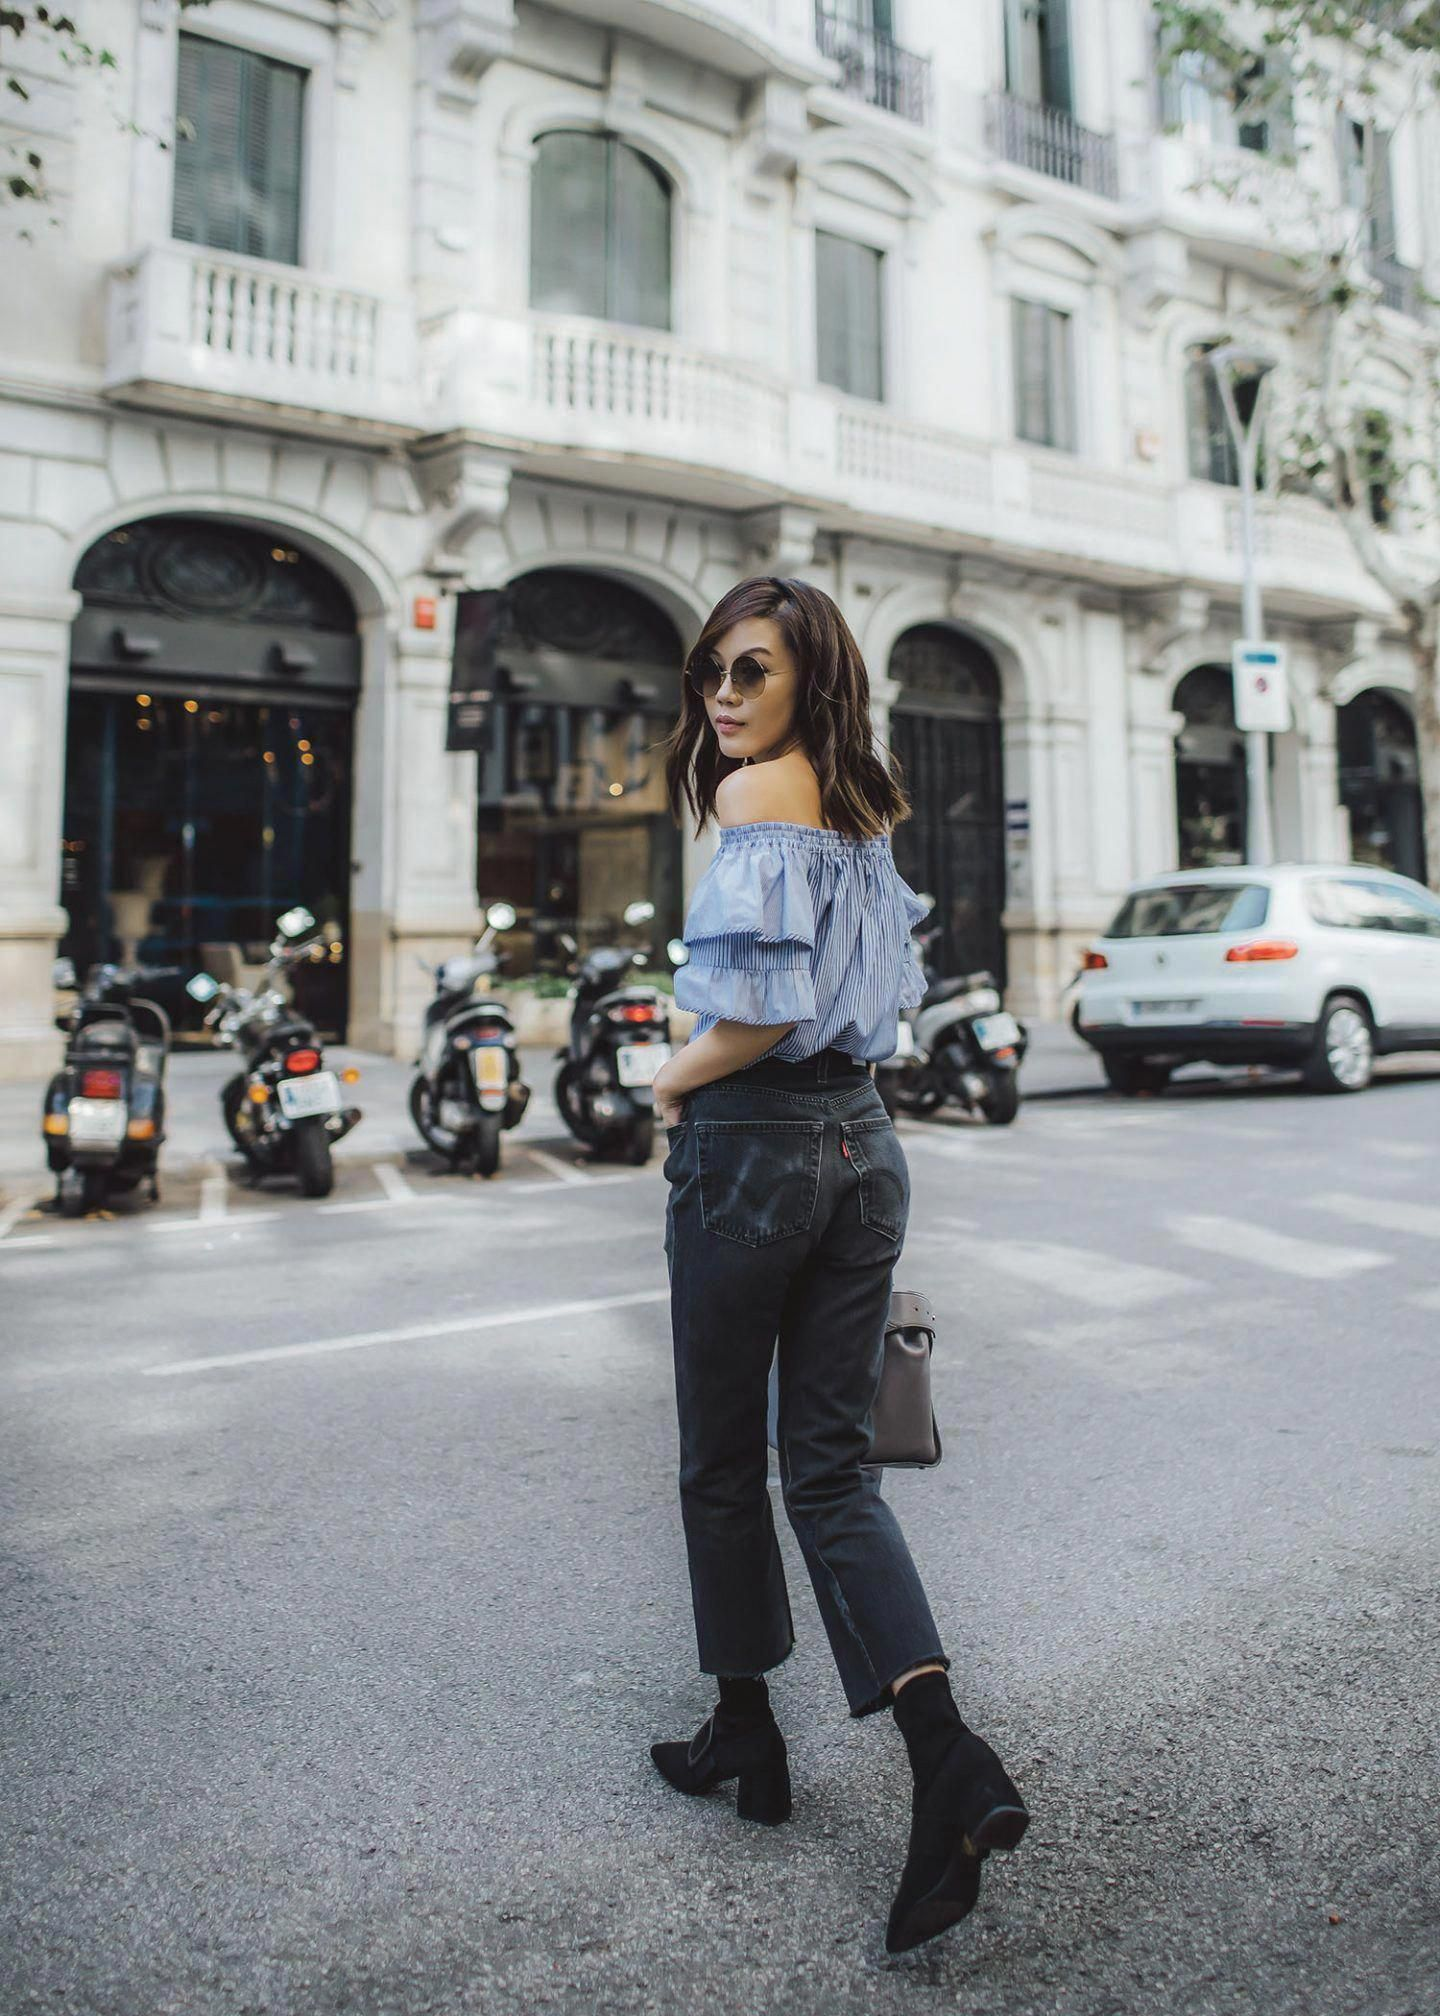 67352f68cc1 Lifestyle fashion travel blogger Jenny Tsang of Tsangtastic wearing off  shoulder ruffle sleeve top and re done levis jeans and roger vivier leather  bag in ...